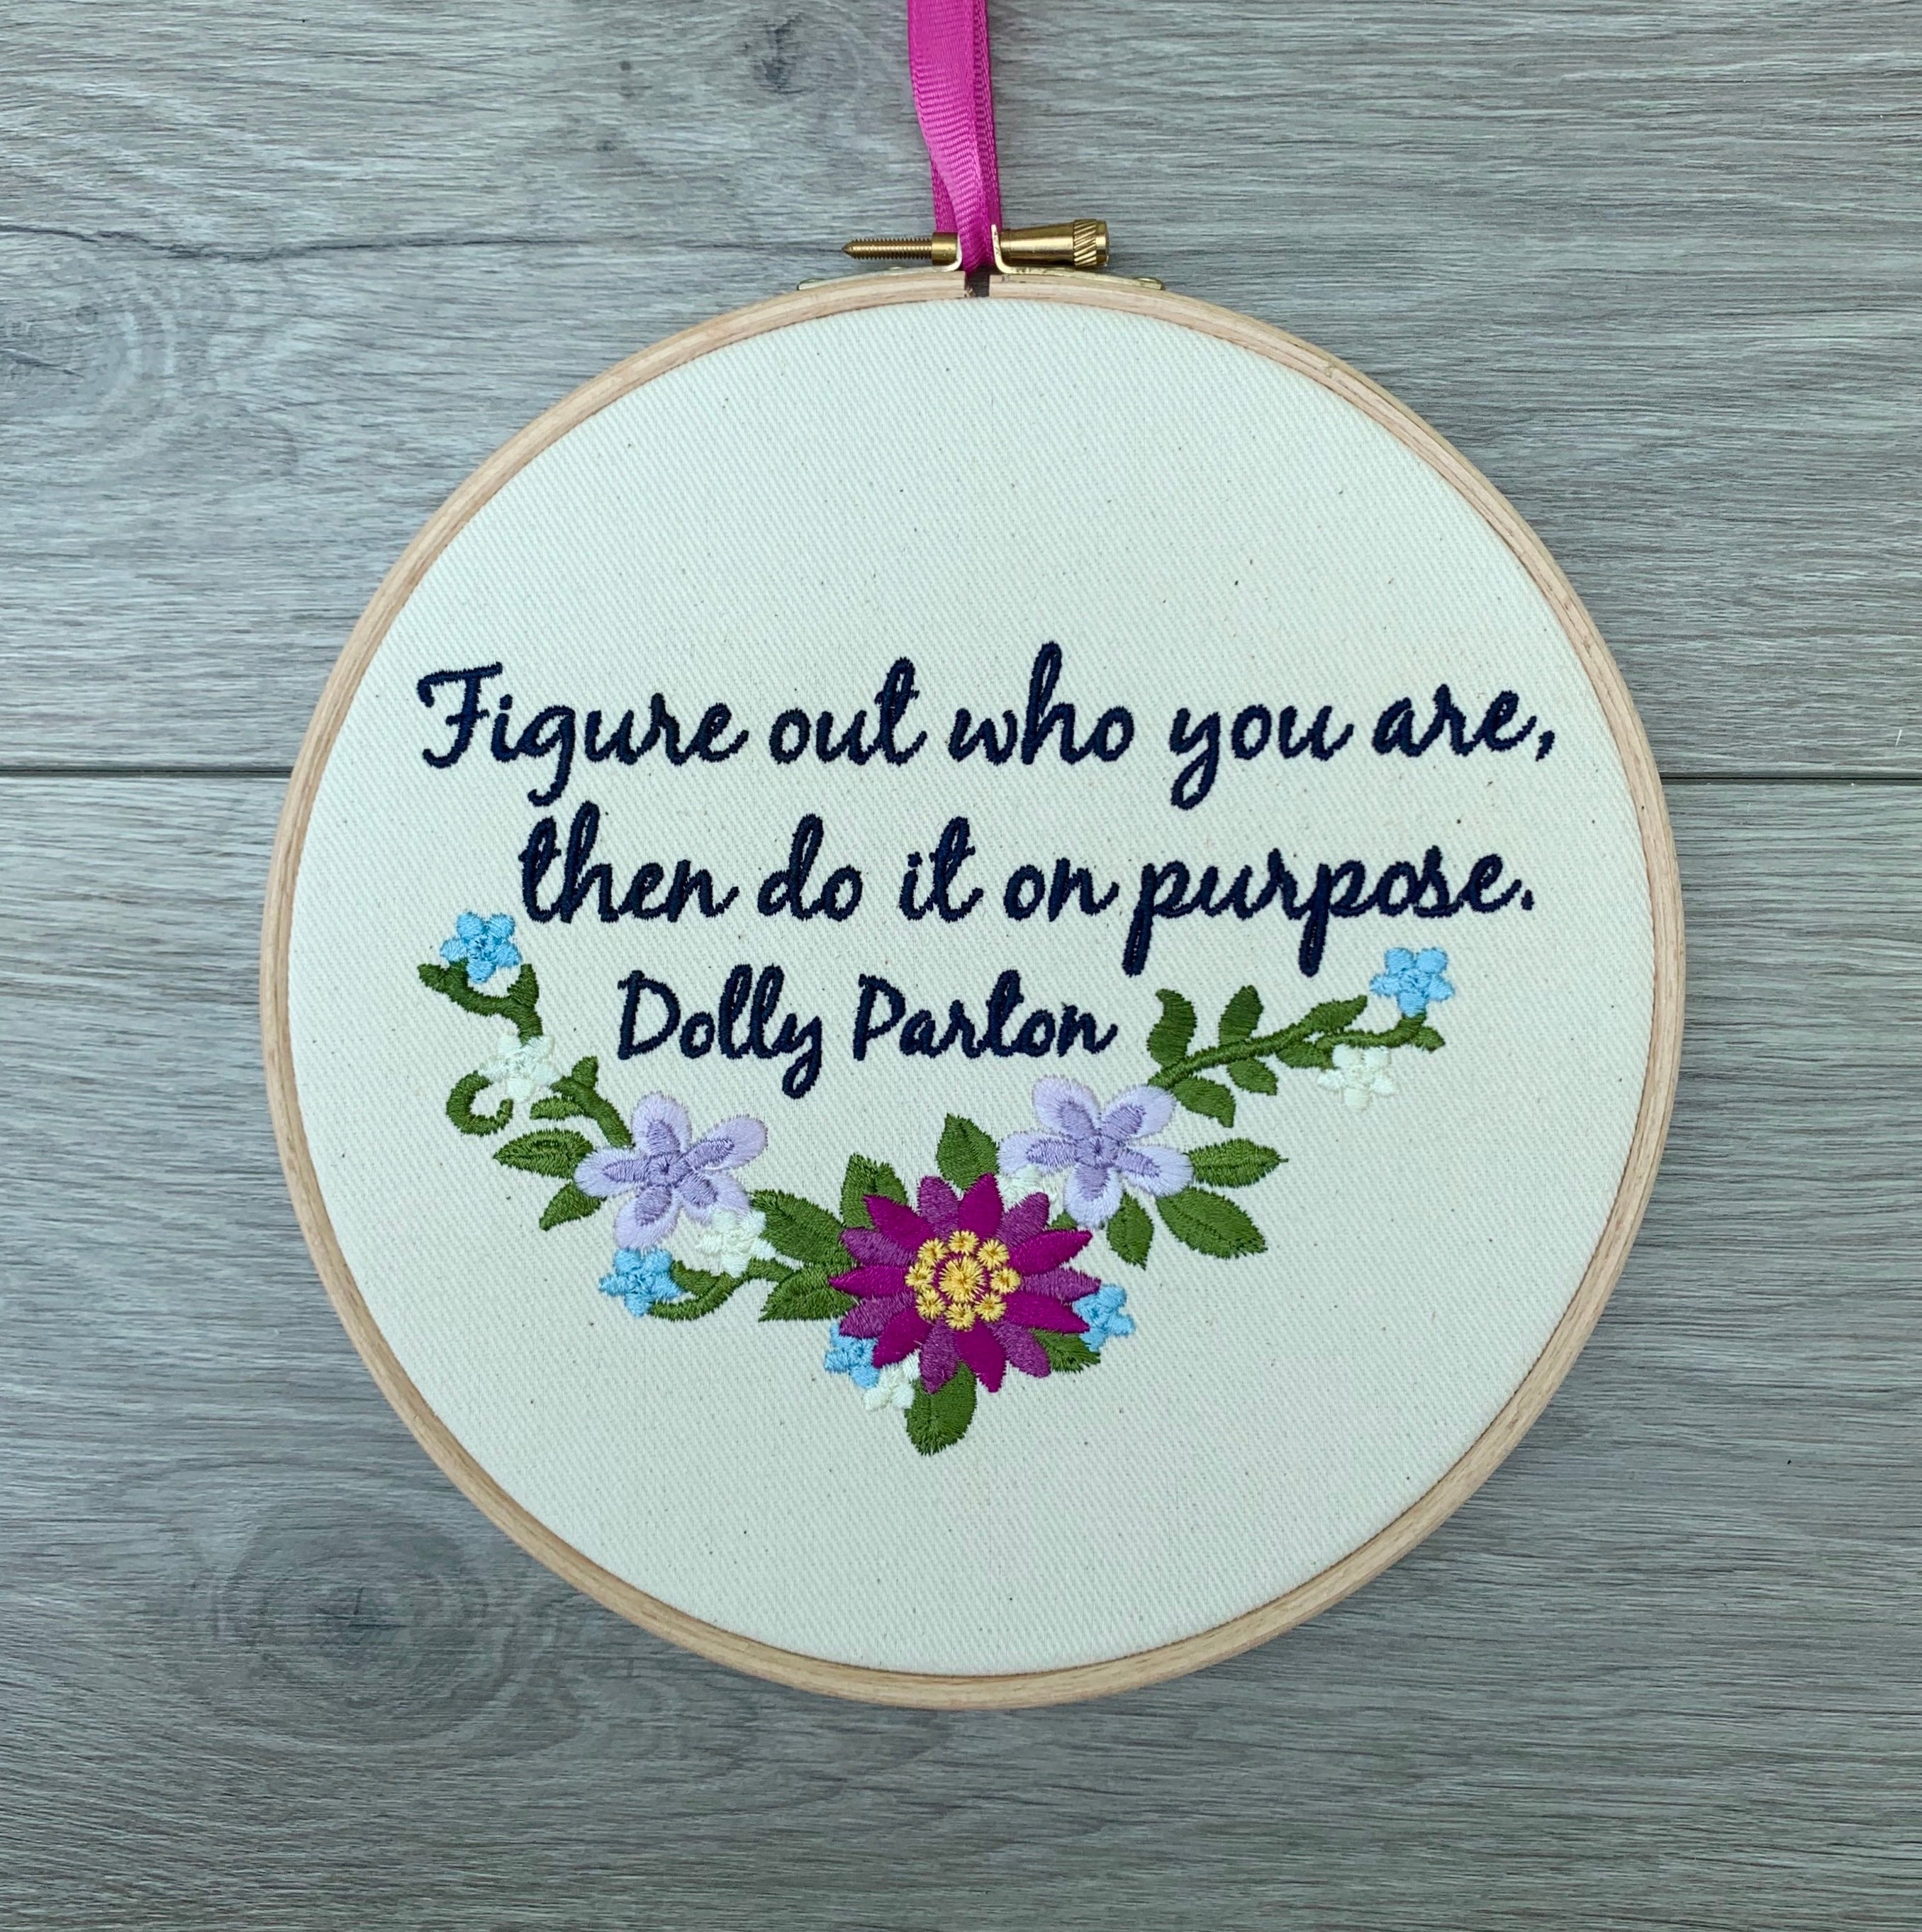 Figure out who you are and do it on purpose, Dolly Parton quote Embroidery hoop art